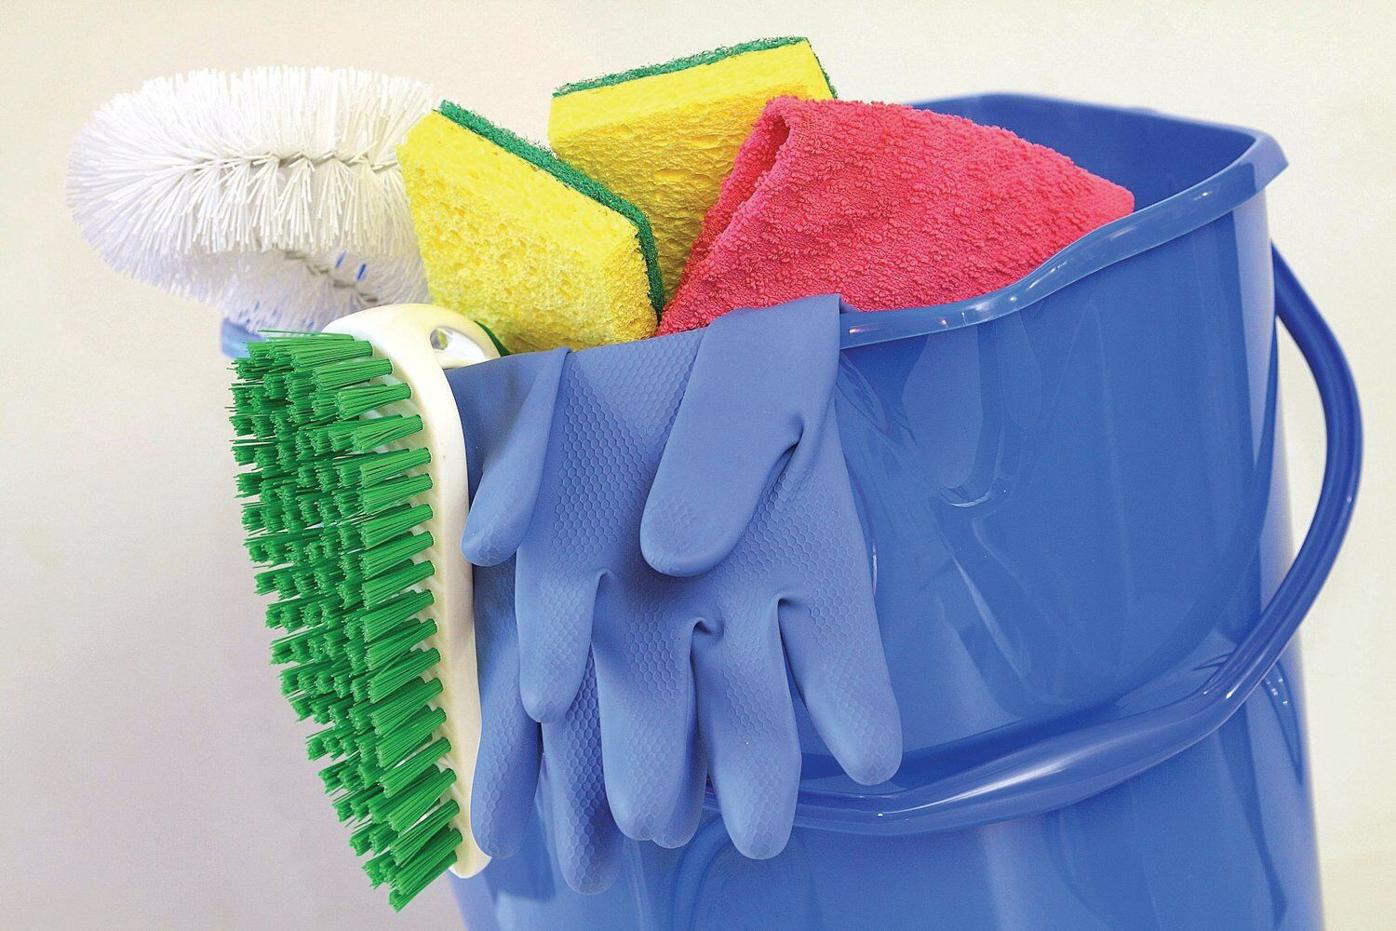 Quarantine tips: 5 places you should clean, organize in your home